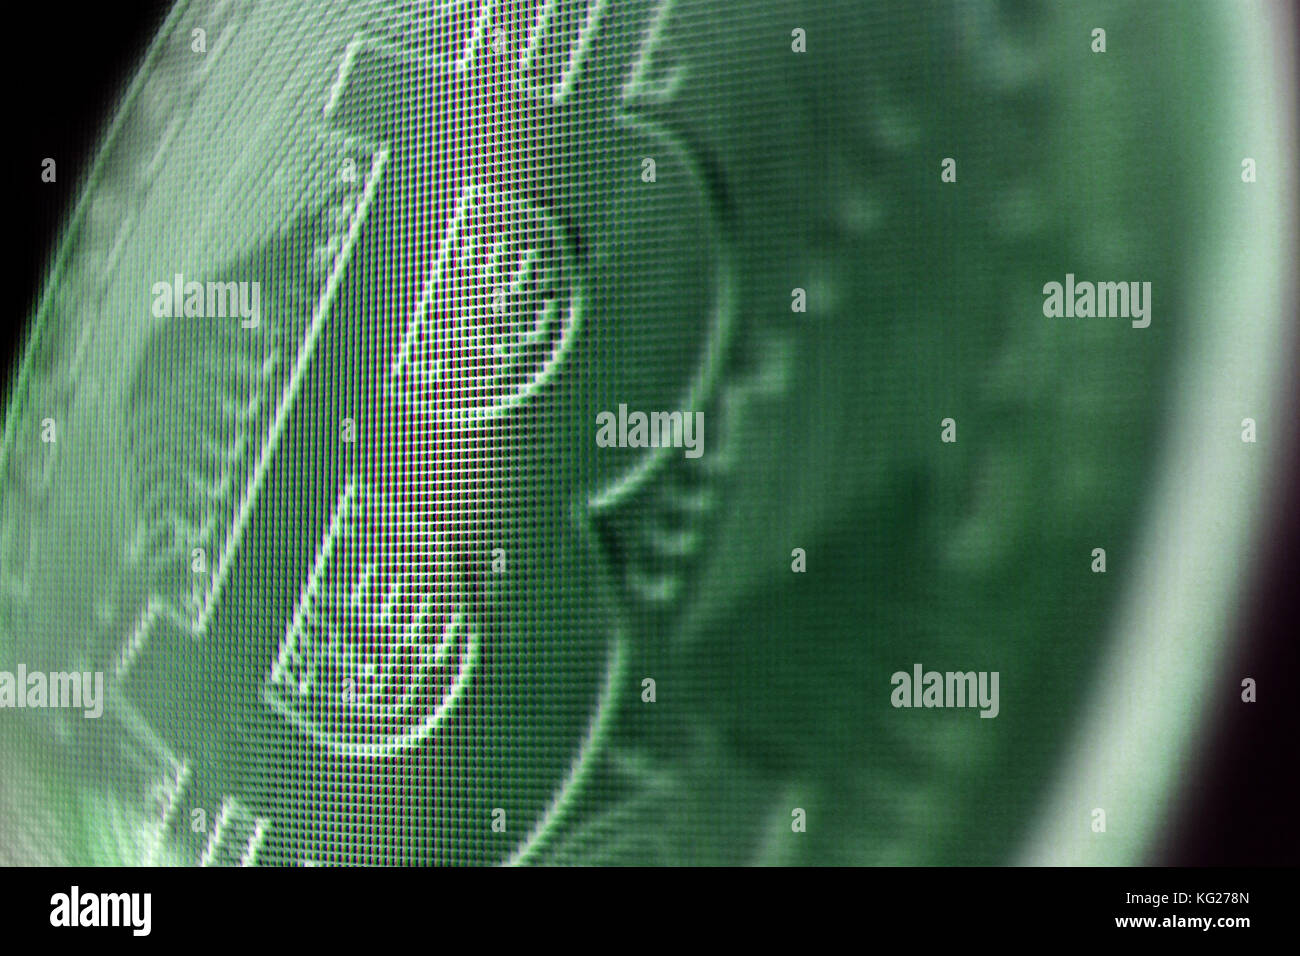 Close-up of bitcoin currency on screen - Stock Image